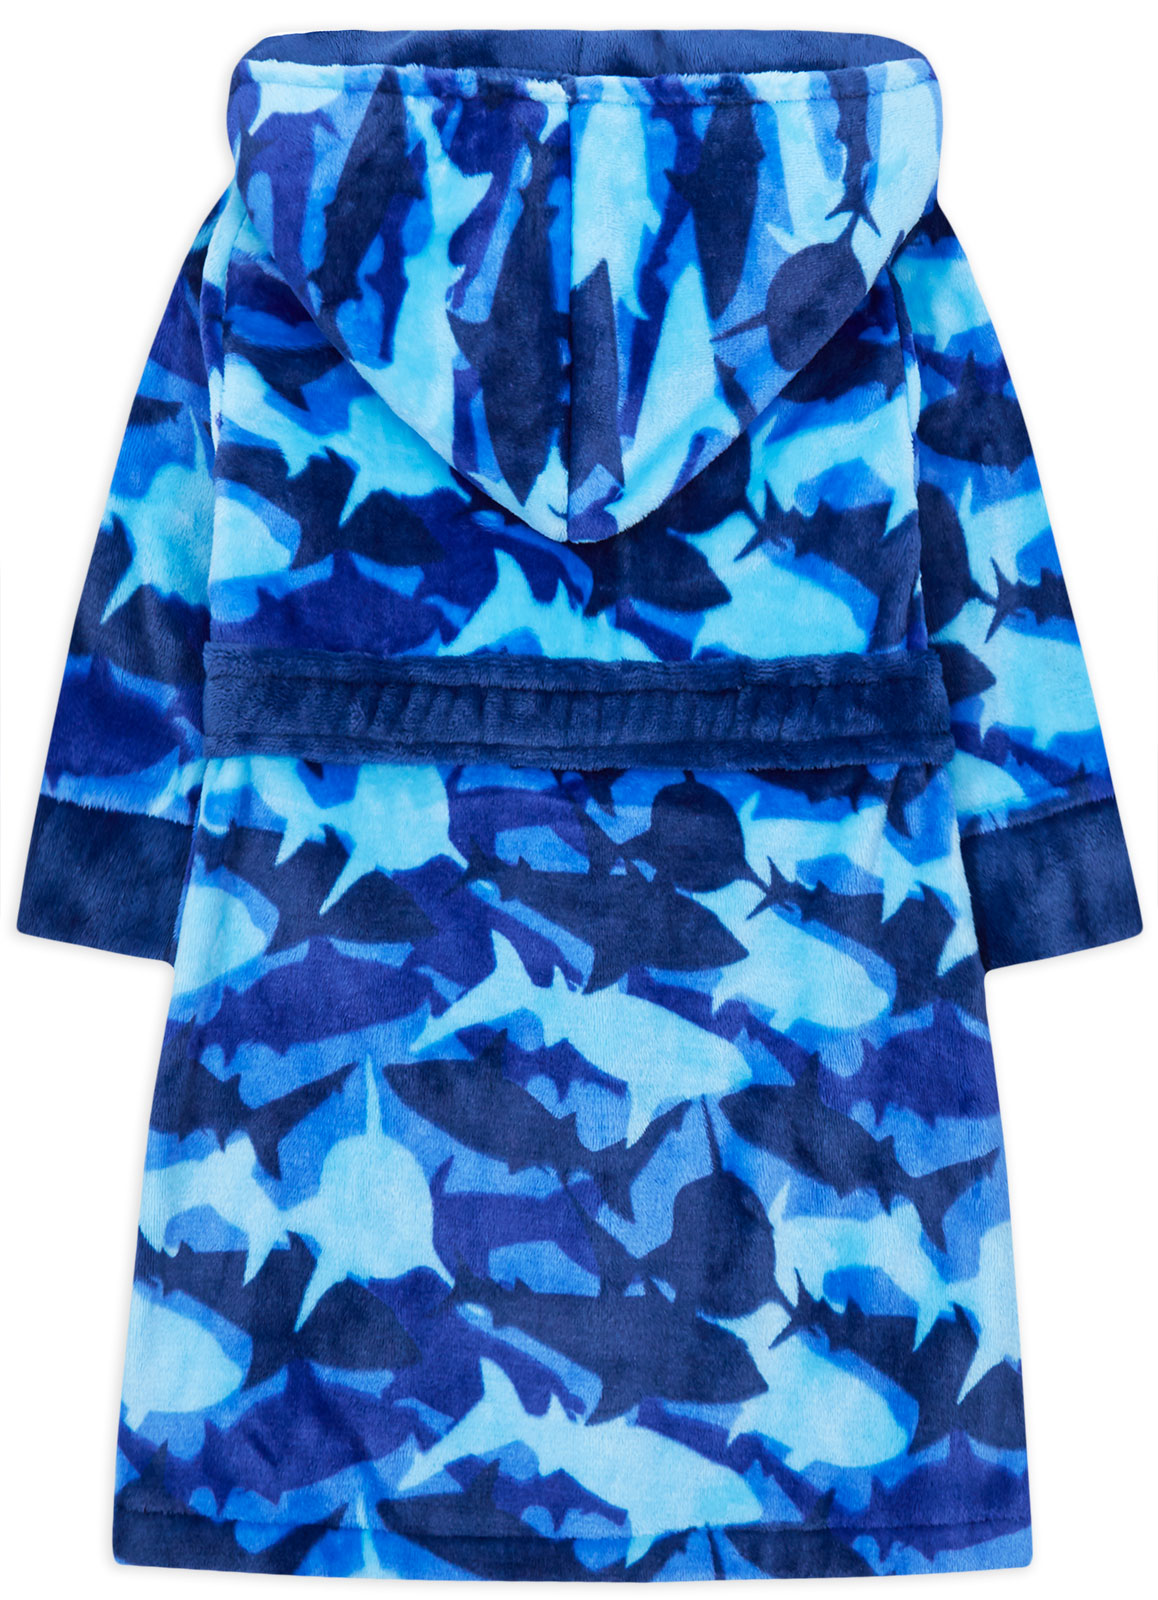 JollyRascals Boys Dressing Gown Space Rocket Print Kids New Fleece Hooded Robe Soft Touch Black Blue Bathrobe Nightwear Age 2 3 4 5 6 7 8 9 10 11 12 13 Years